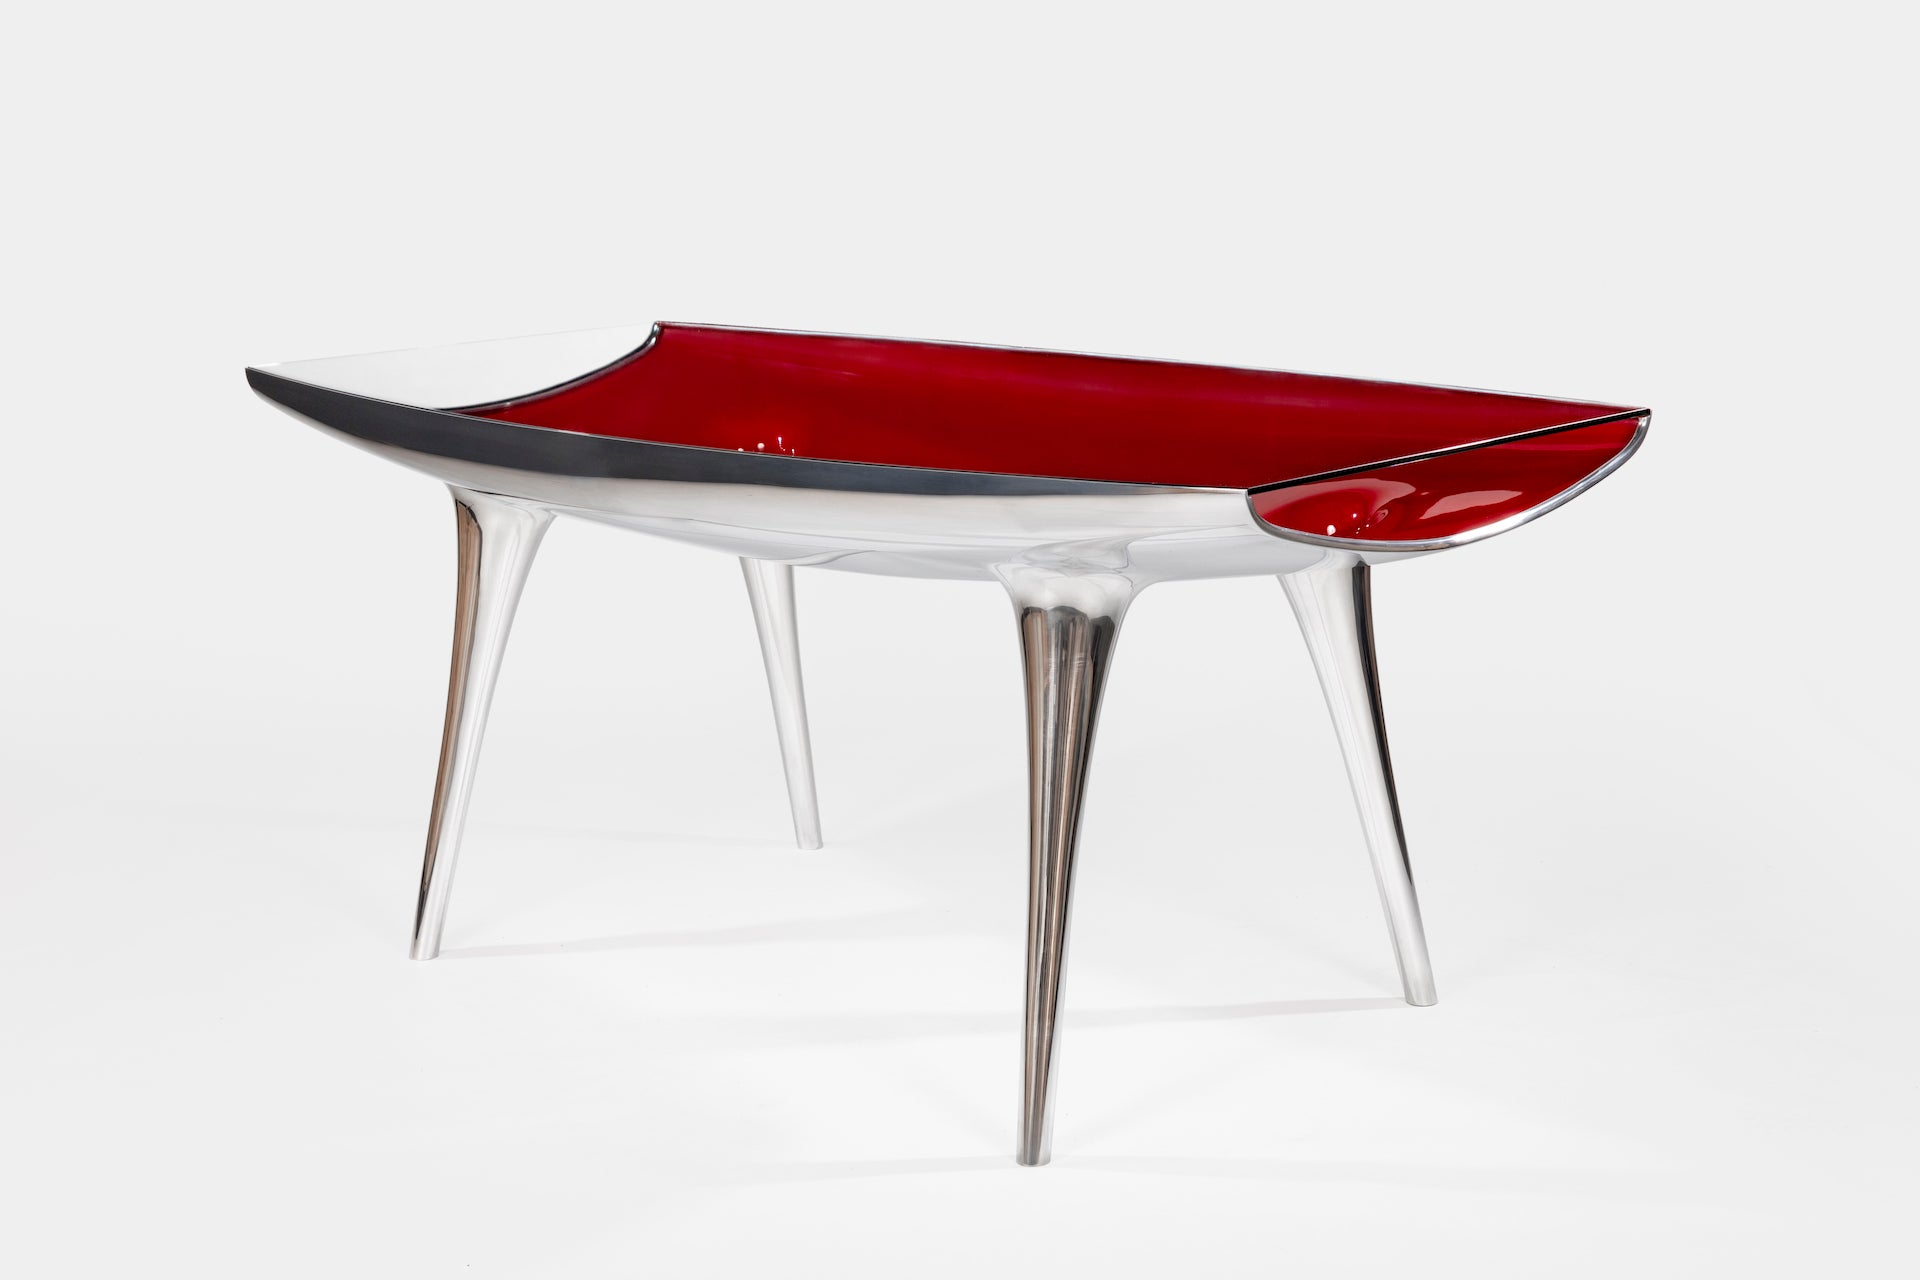 Event Horizon Chop Top Table by Marc Newson for Galerie Kreo, 1992/2006. Photo © Alexandra de Cossette; Courtesy of Galerie kreo